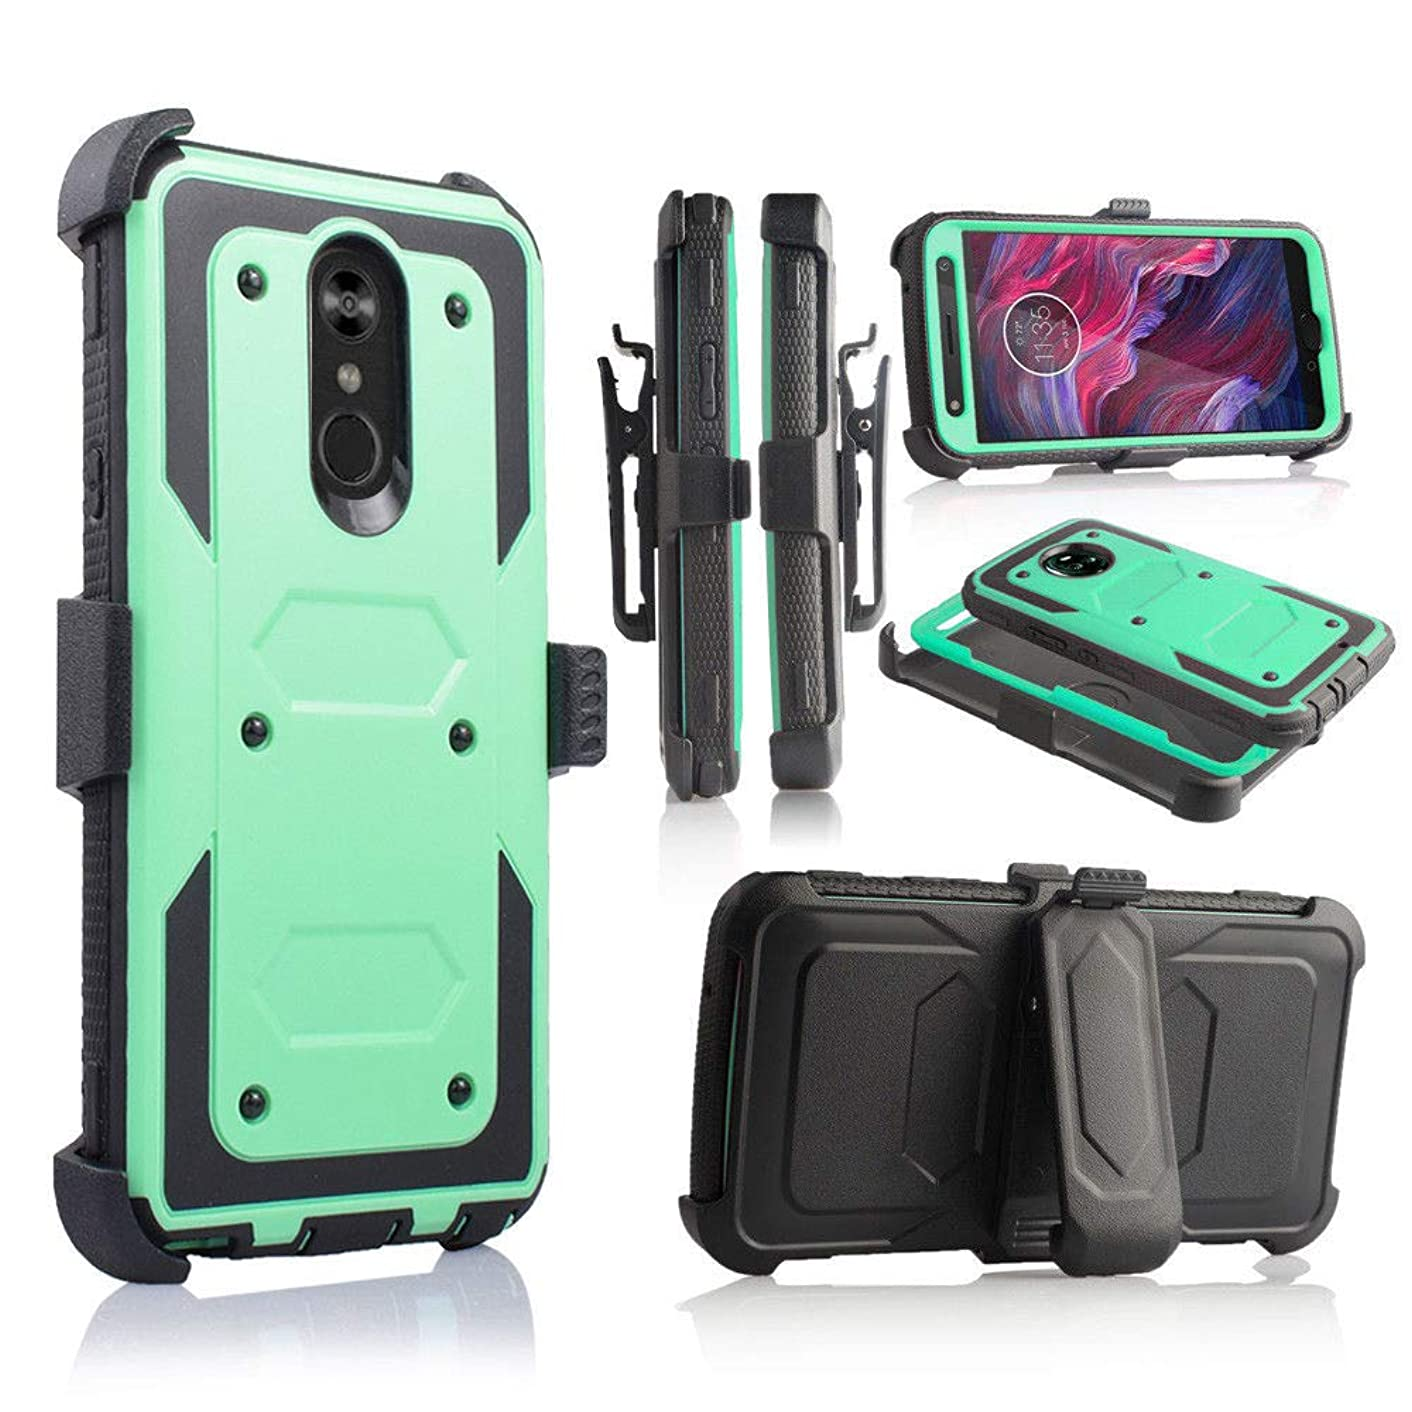 Compatible with LG Stylo 4 Case Full Cover Built in Screen Protector, Holster, Kickstand (Teal)